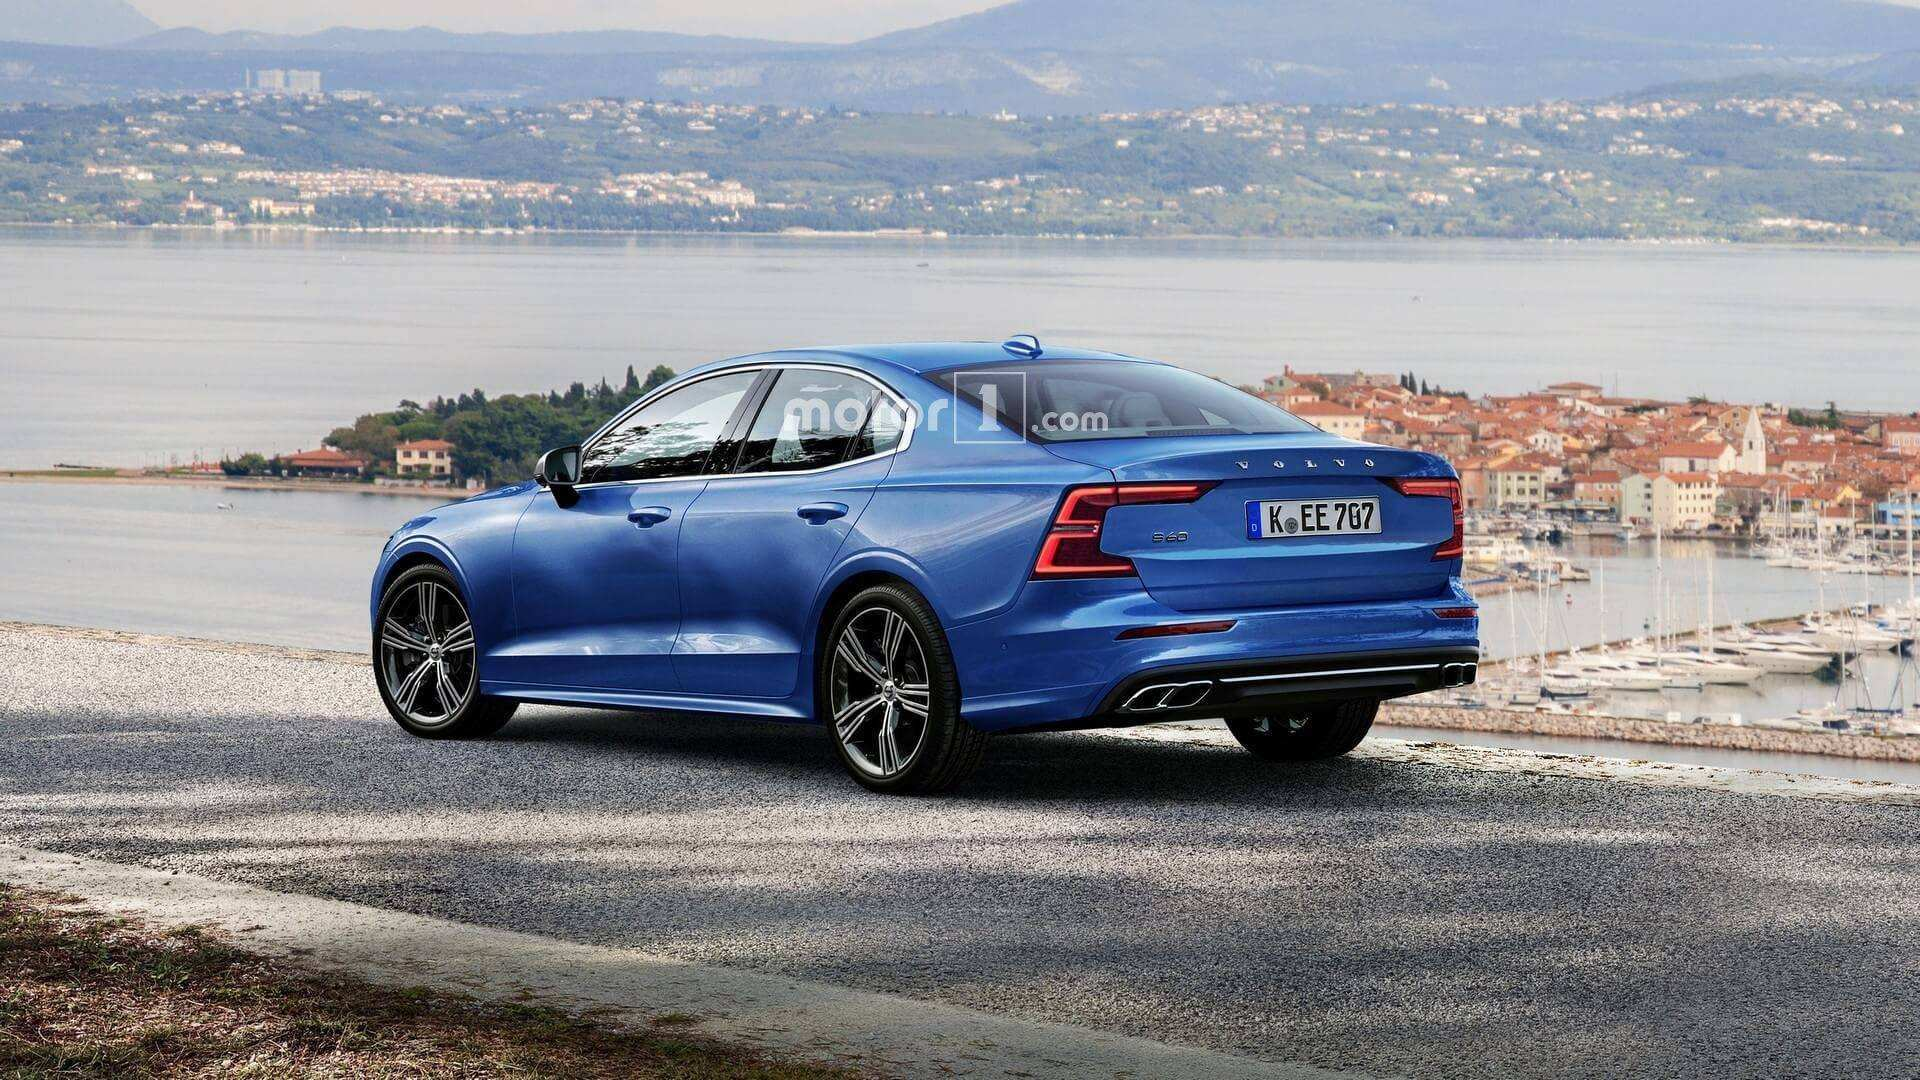 81 Gallery of New 2019 Volvo S60 Spesification with New 2019 Volvo S60